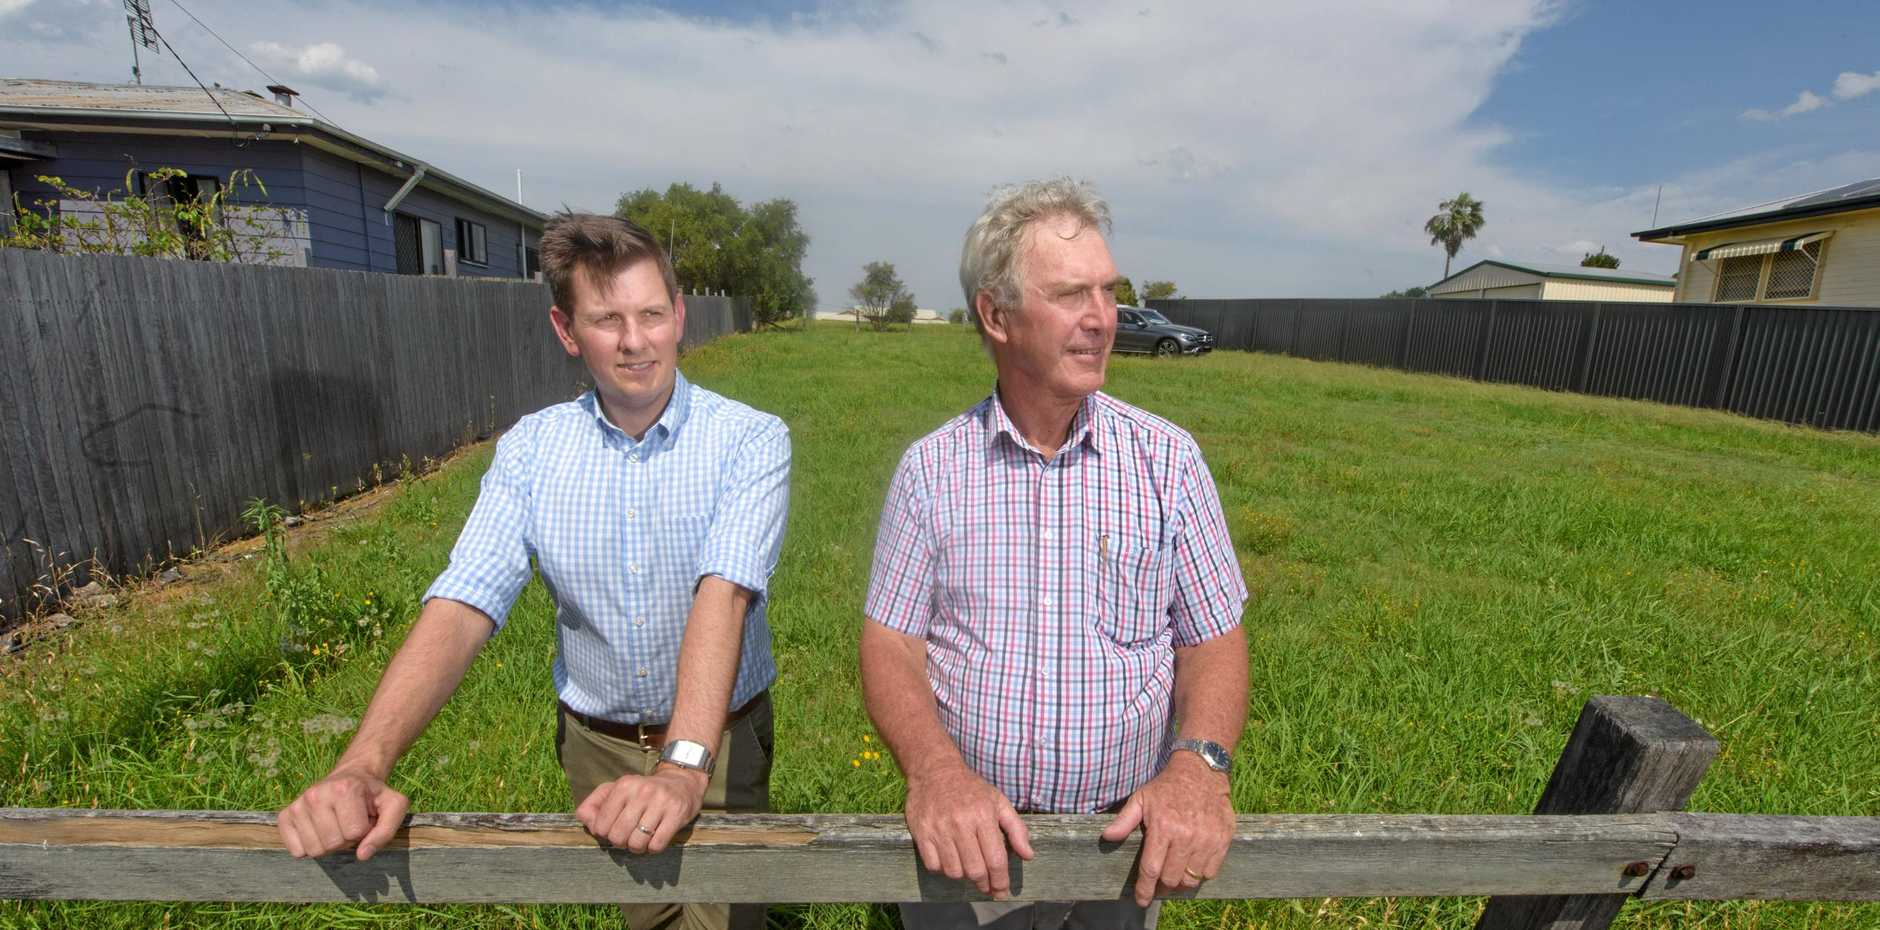 Clarence Village CEO Duncan McKimm and chairman Geoff Shepherd on the land they plans for new housing. They are calling on the government to assist with affordable housing for elderly.